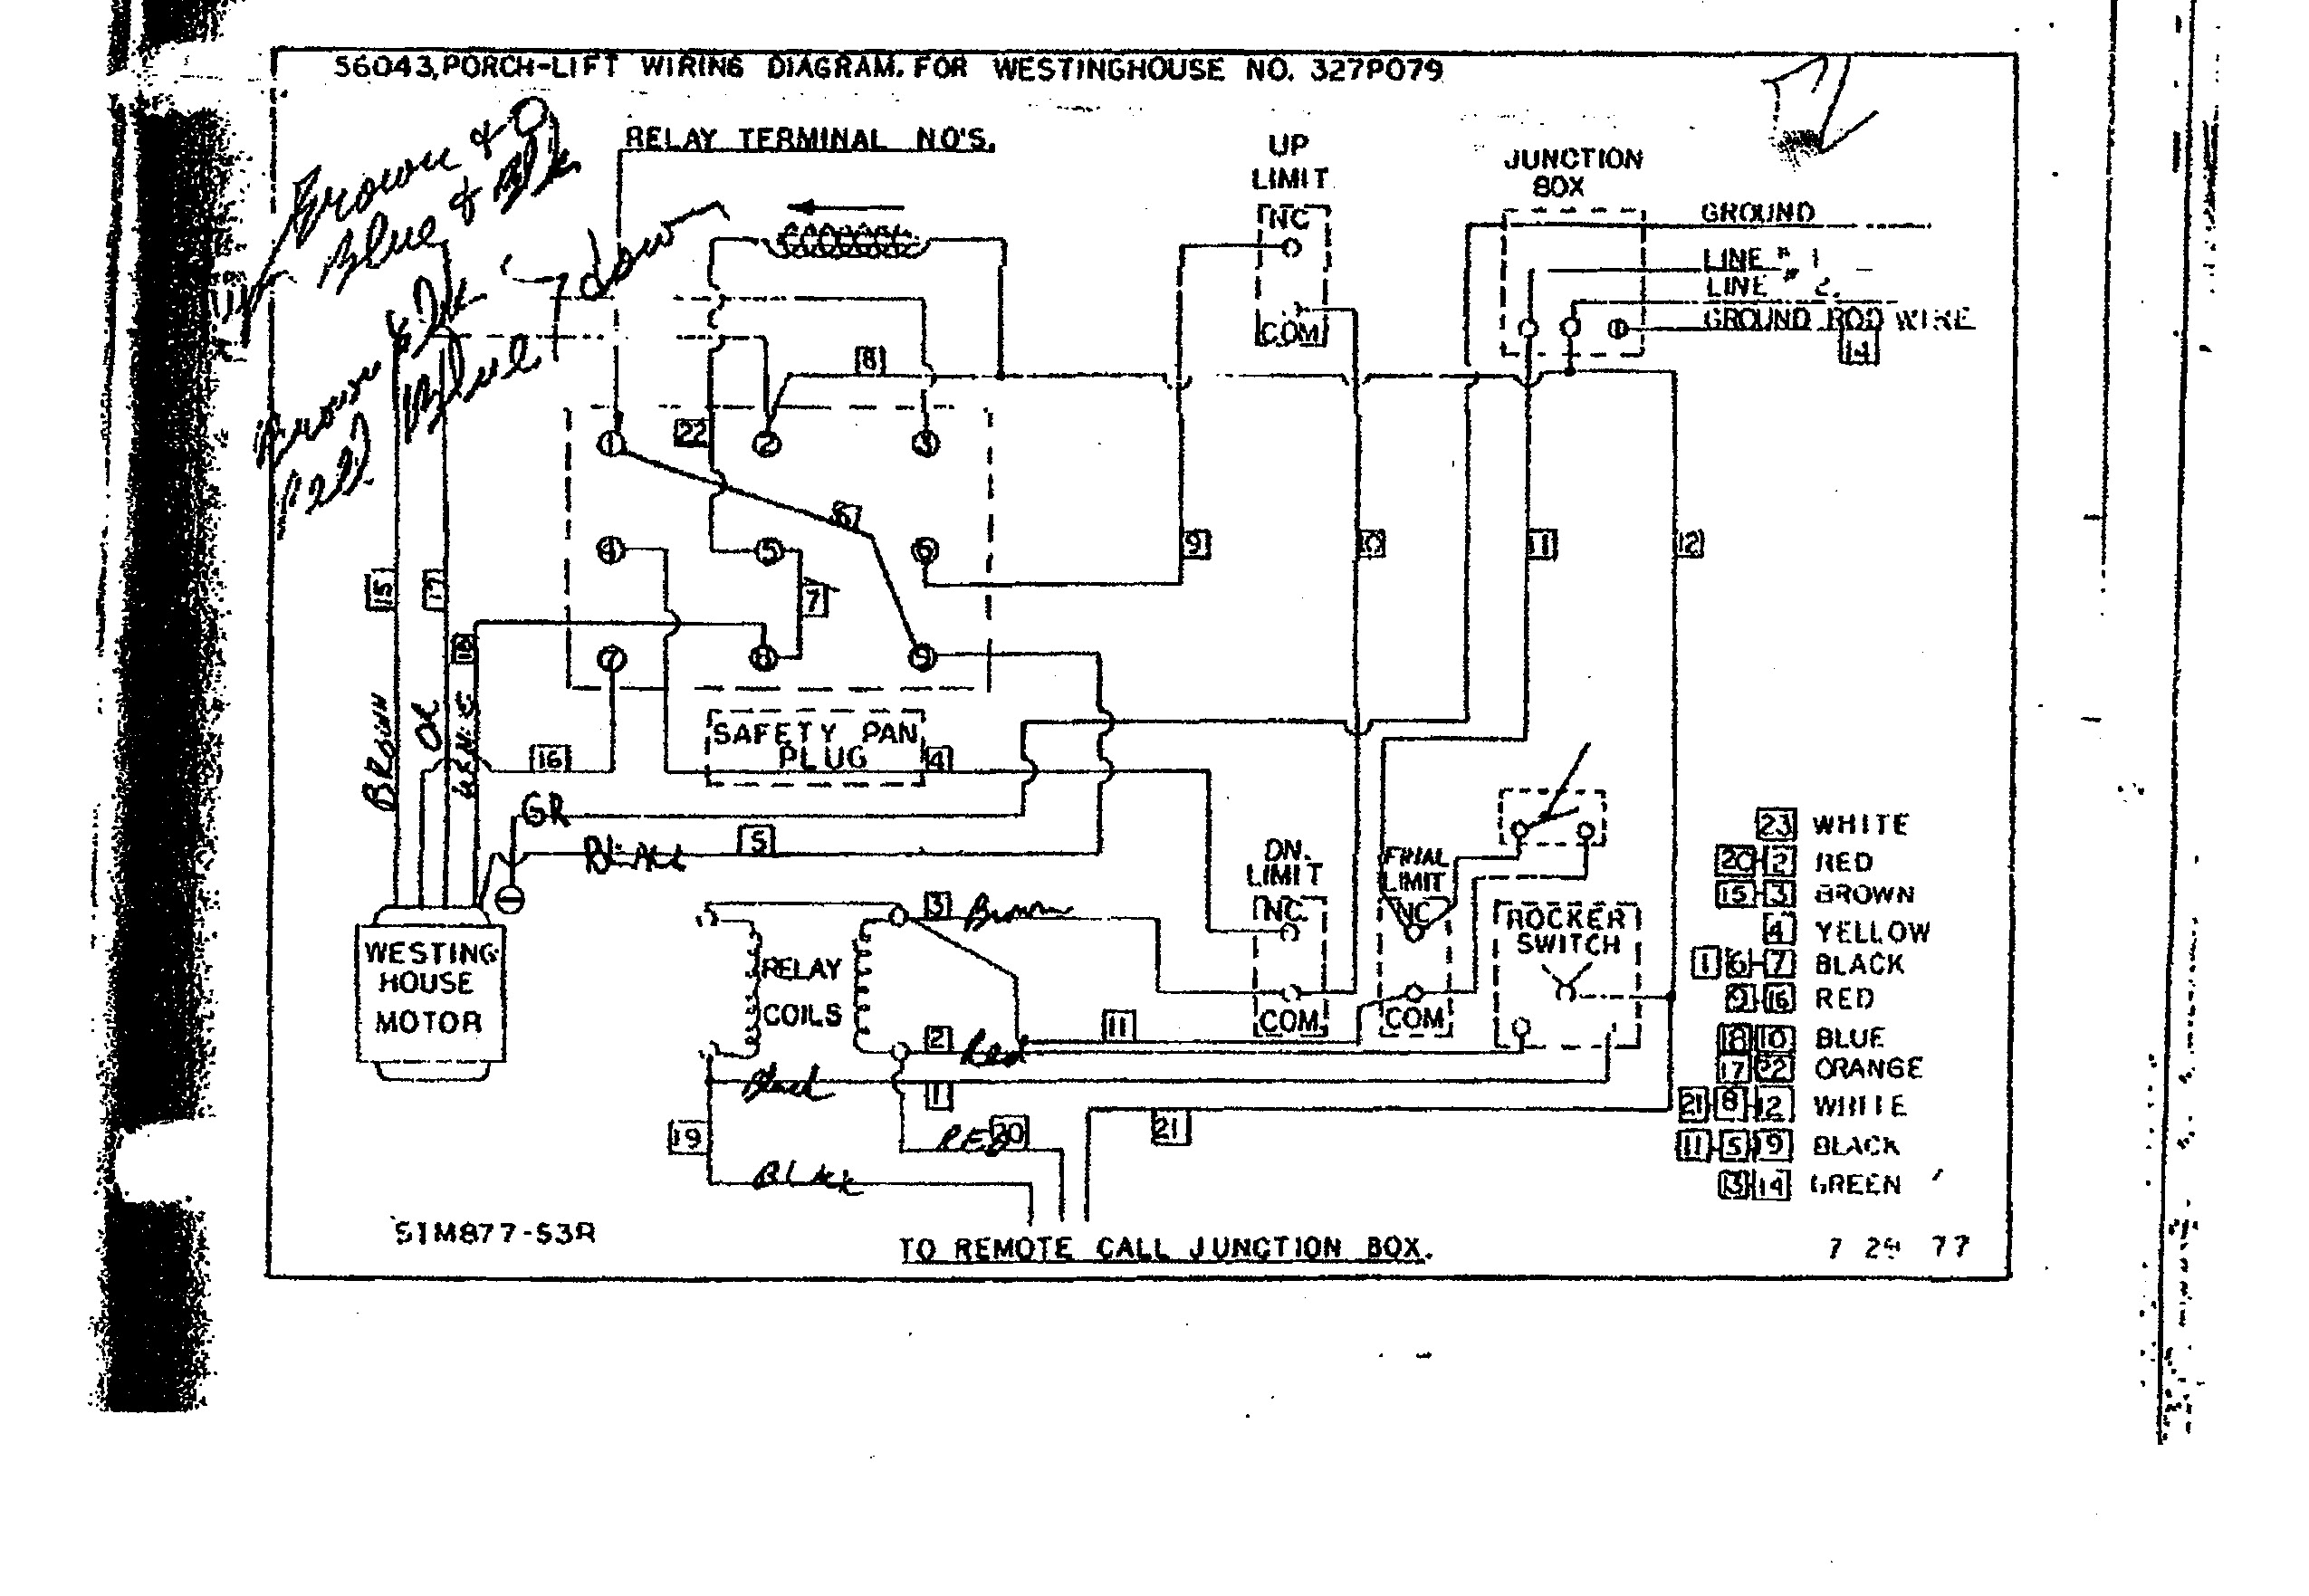 Single Phase 4 Pole Motor Wiring Diagram besides Elevator Wiring Diagram additionally Wiring Diagram Dryer Motor further Gmc Envoy Blower Motor Resistor Location besides Century Motor Wiring Diagram 2wire. on westinghouse motors wire